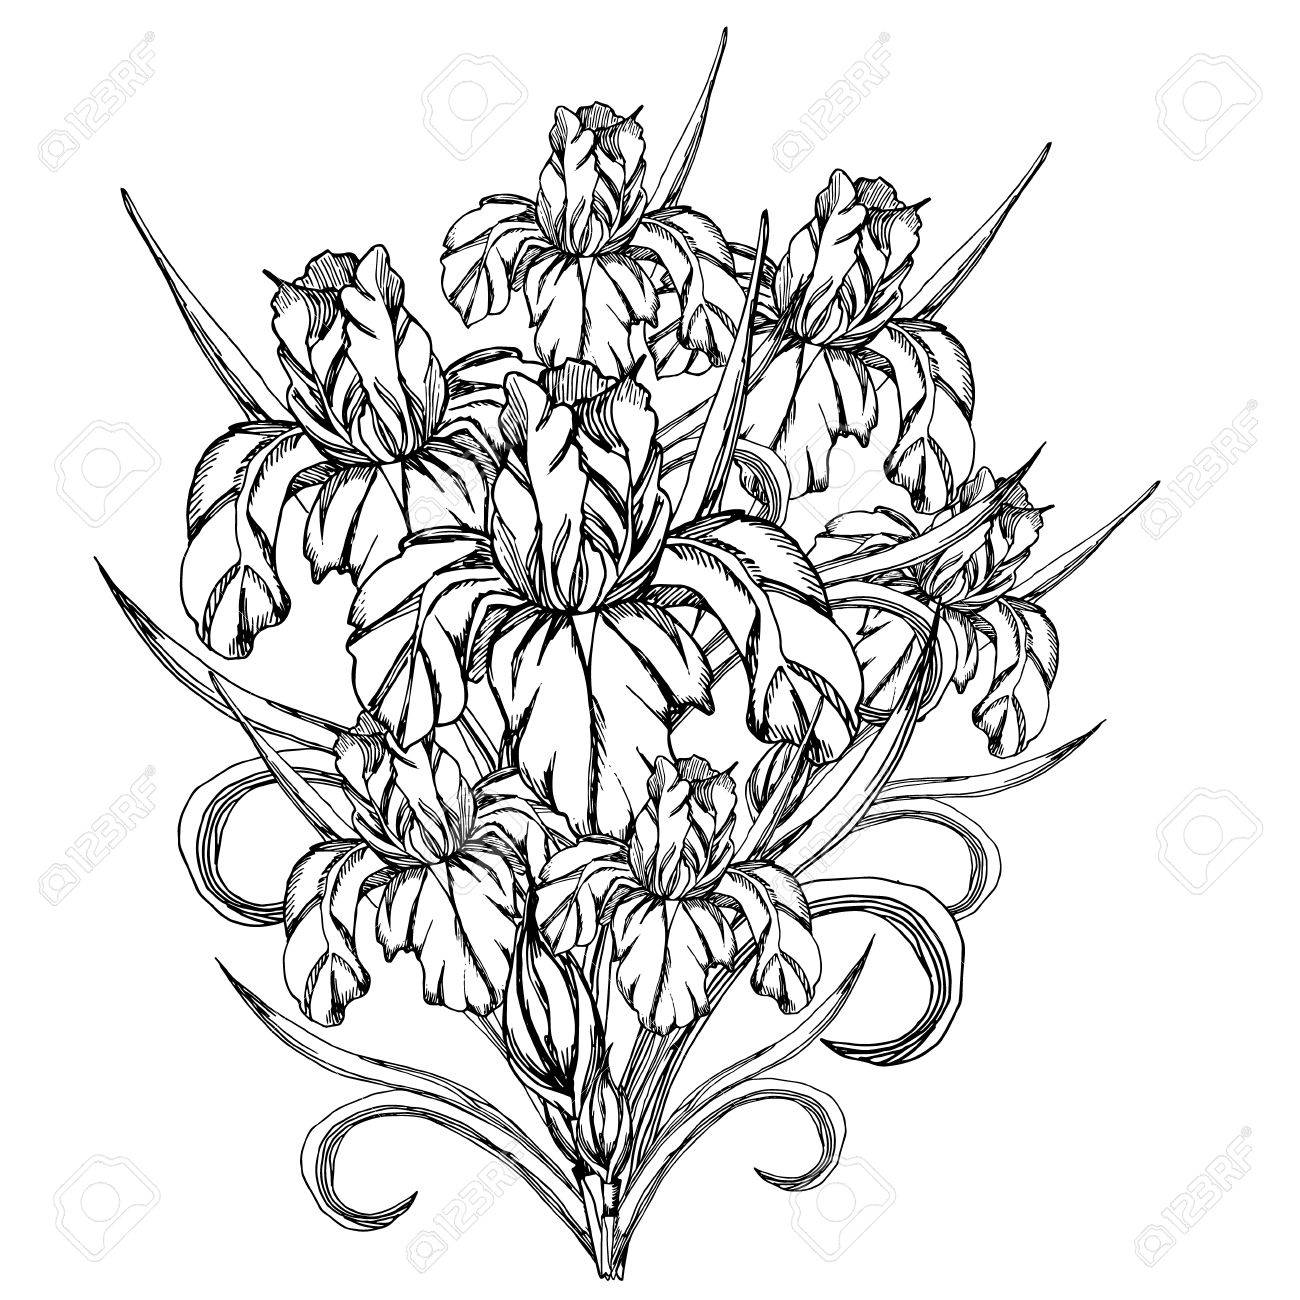 Nice flower patterns to color hello kitty paintings coloring pages charming hawaiian flower template gallery resume ideas namanasacom 56483915 sketch flower vector decorative trace of iris izmirmasajfo